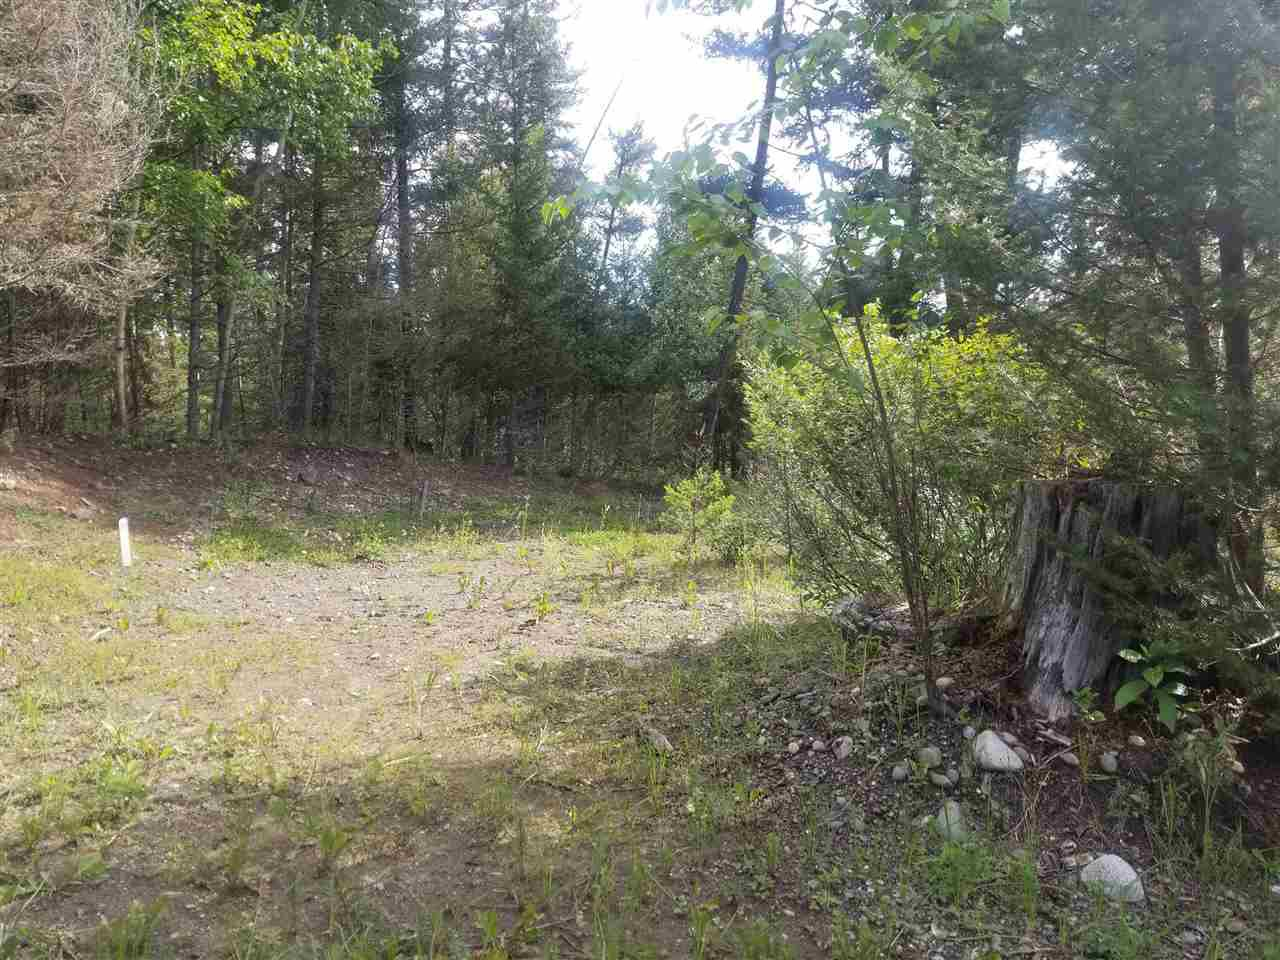 """Photo 3: Photos: 4863 STEWART Road in 108 Mile Ranch: 108 Ranch Land for sale in """"108 MILE RANCH"""" (100 Mile House (Zone 10))  : MLS®# R2391163"""